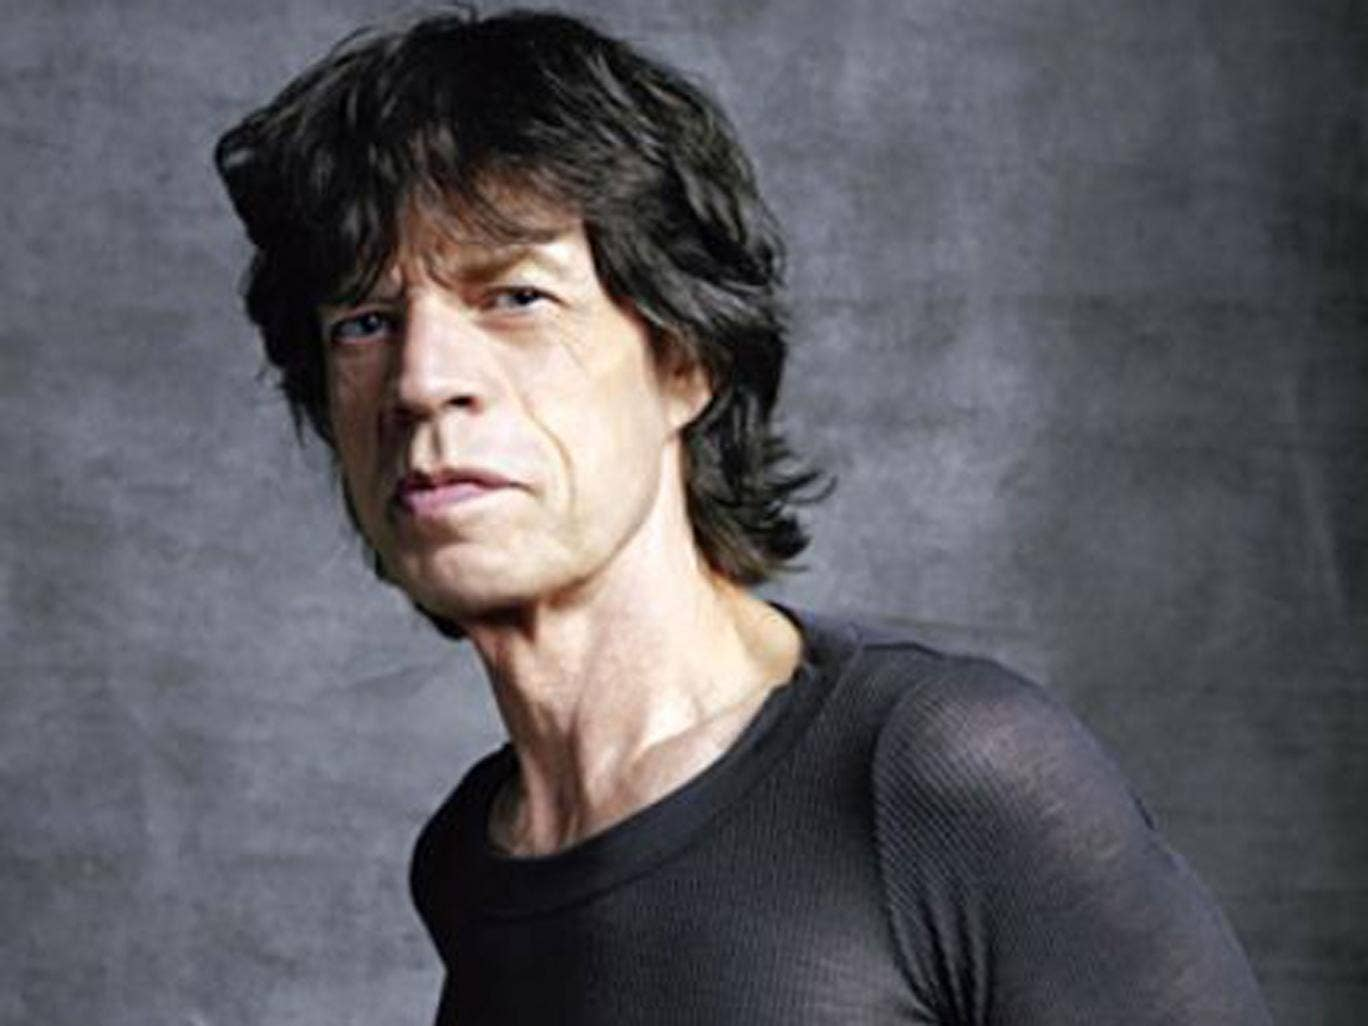 <p><strong>2. Air waves</strong></p> <p>Mick Jagger kicks off a batch of musican-curated playlists – organised in partnership with Songlines magazine – for British Airways' in-flight entertainment this month. Sir Mick has chosen music by Mal